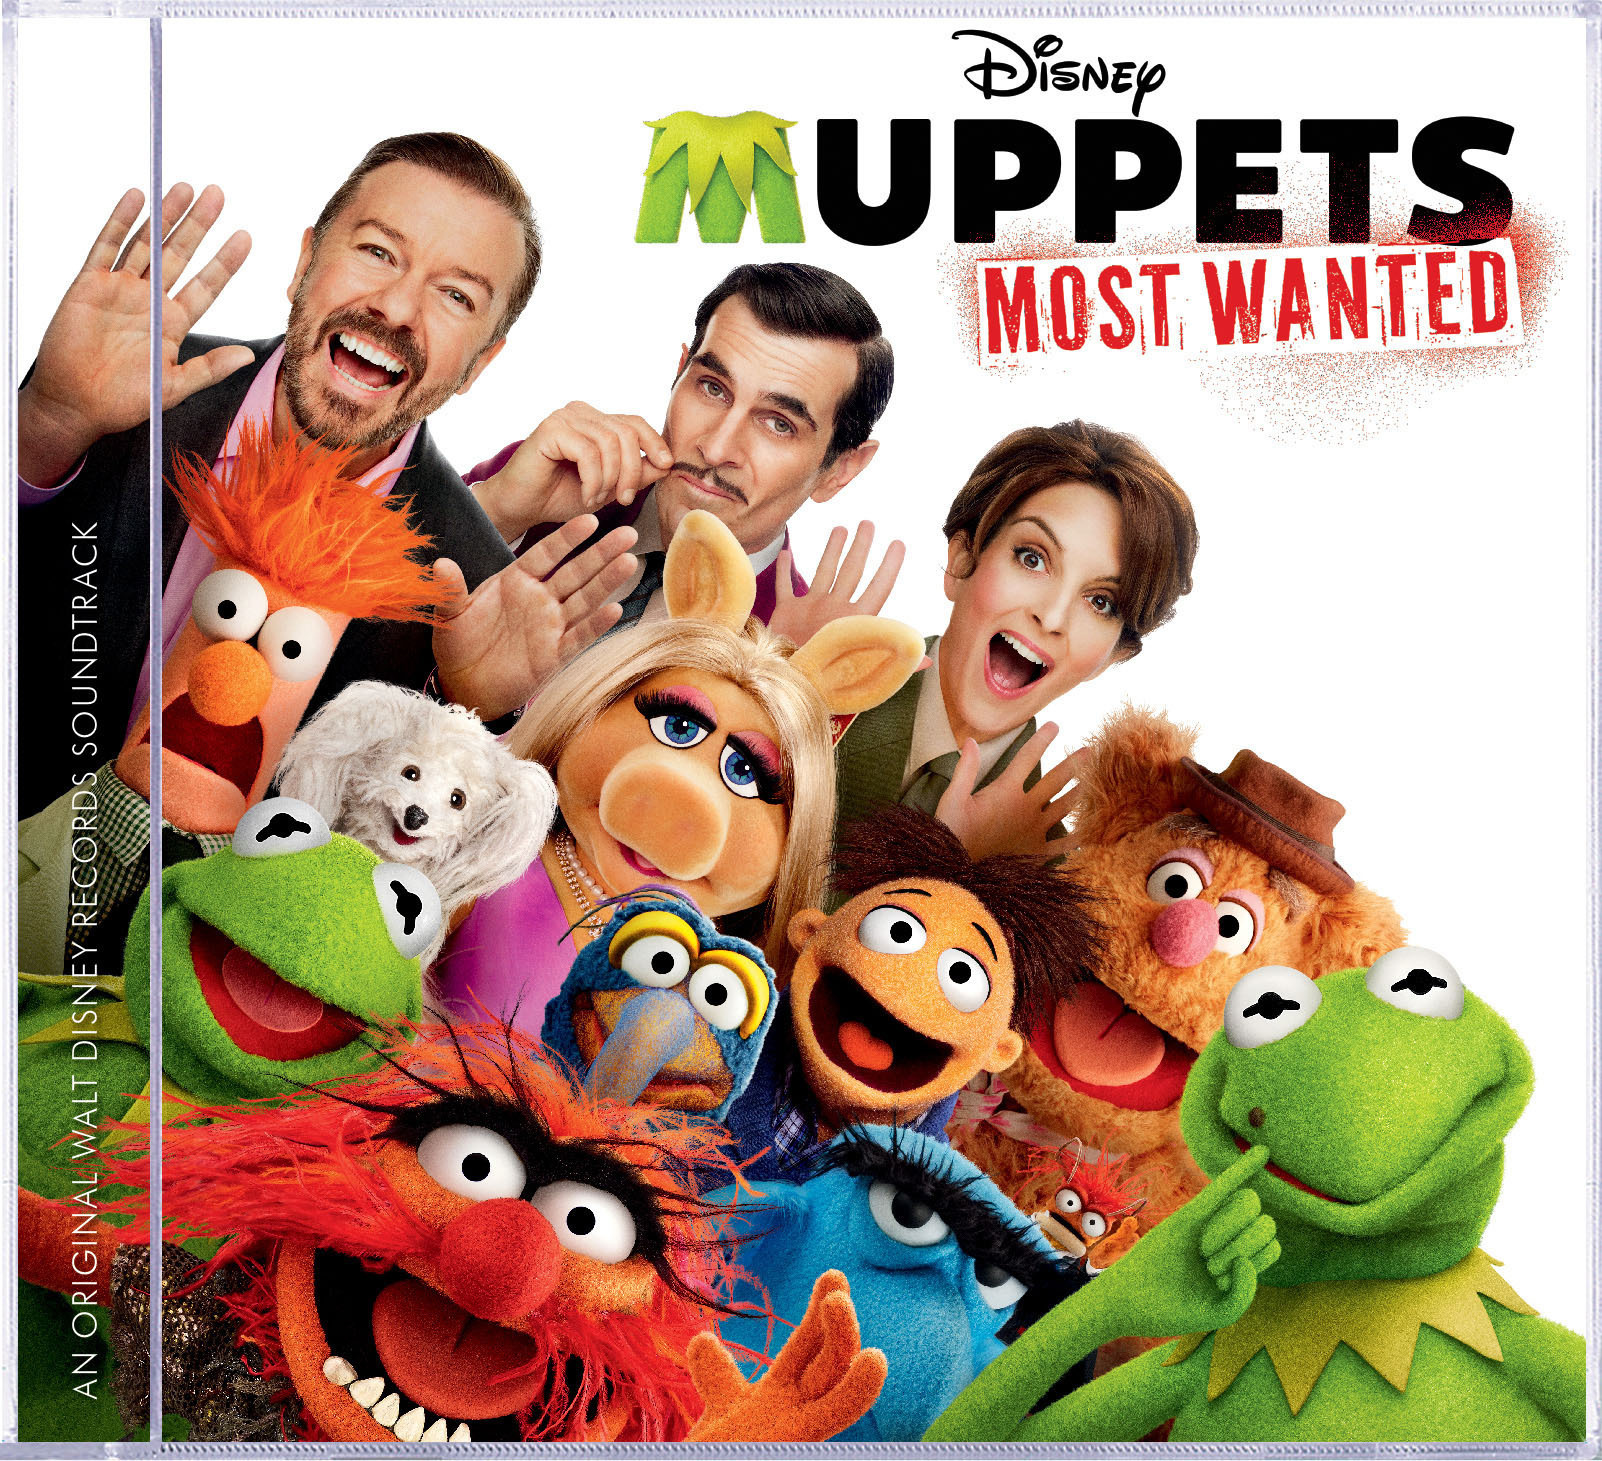 MUPPETS MOST WANTED Soundtrack Makes Mayhem Today